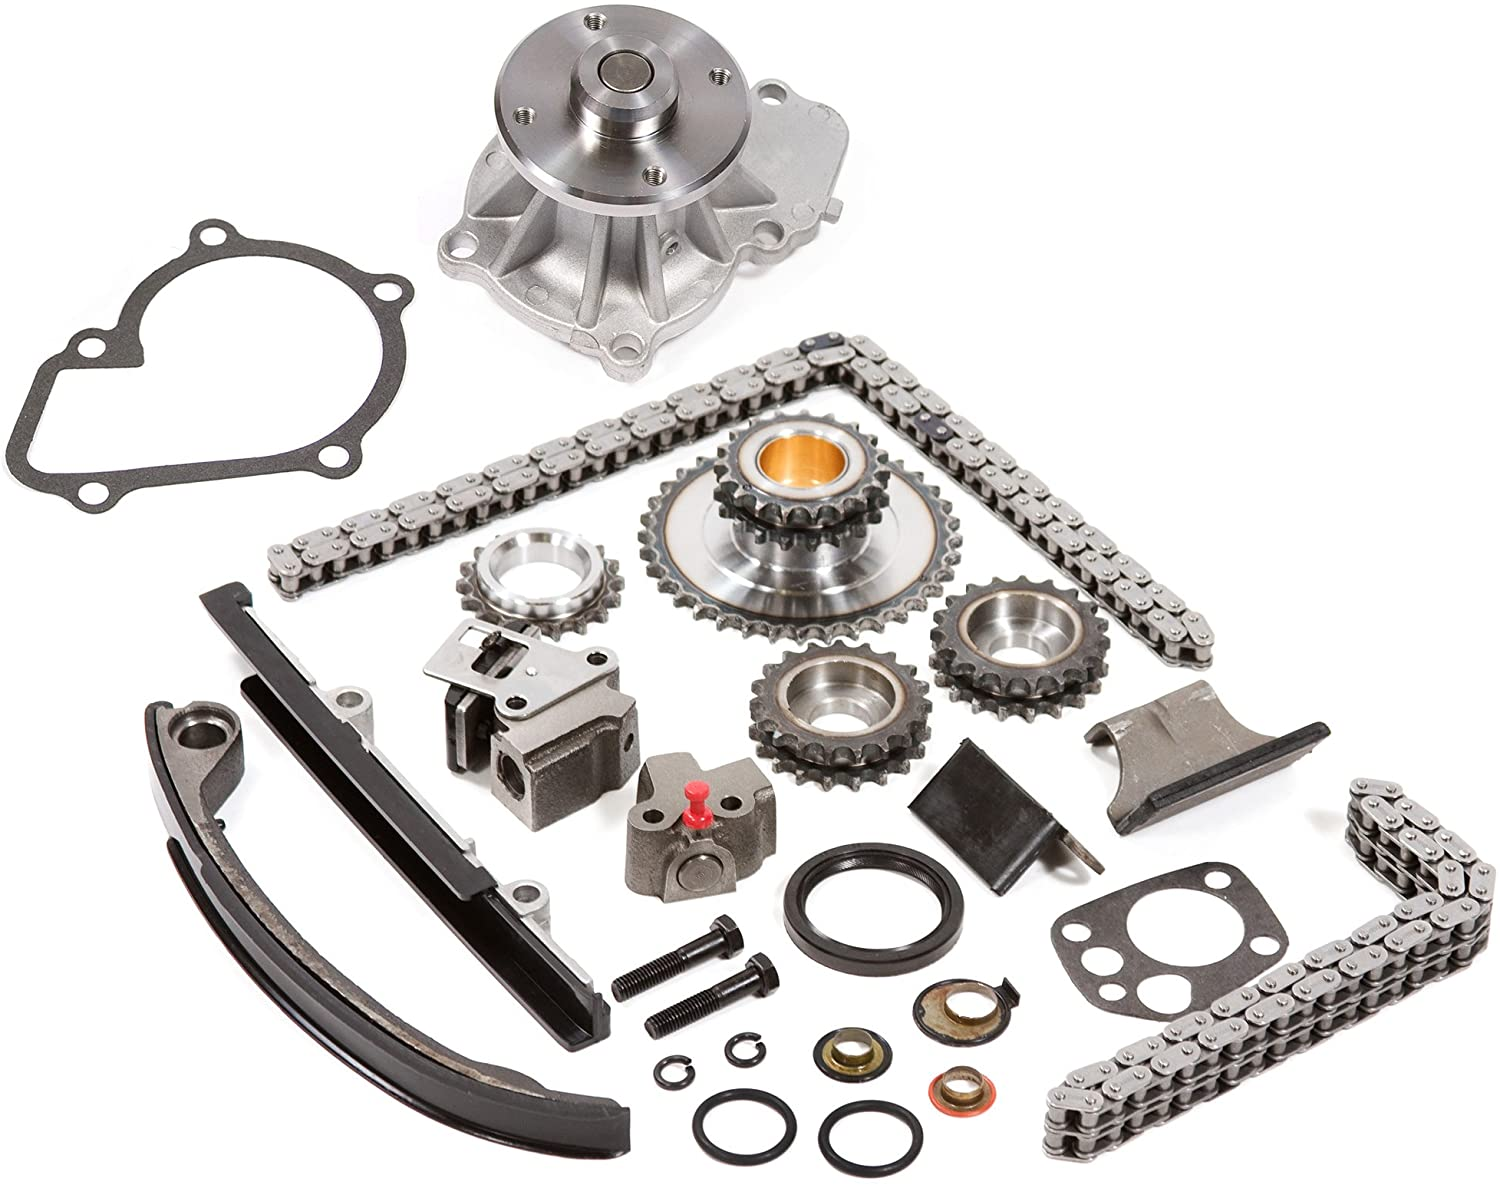 Compatible With 91-98 Nissan 2.4 DOHC 16V KA24DE Timing Chain Kit Water Pump